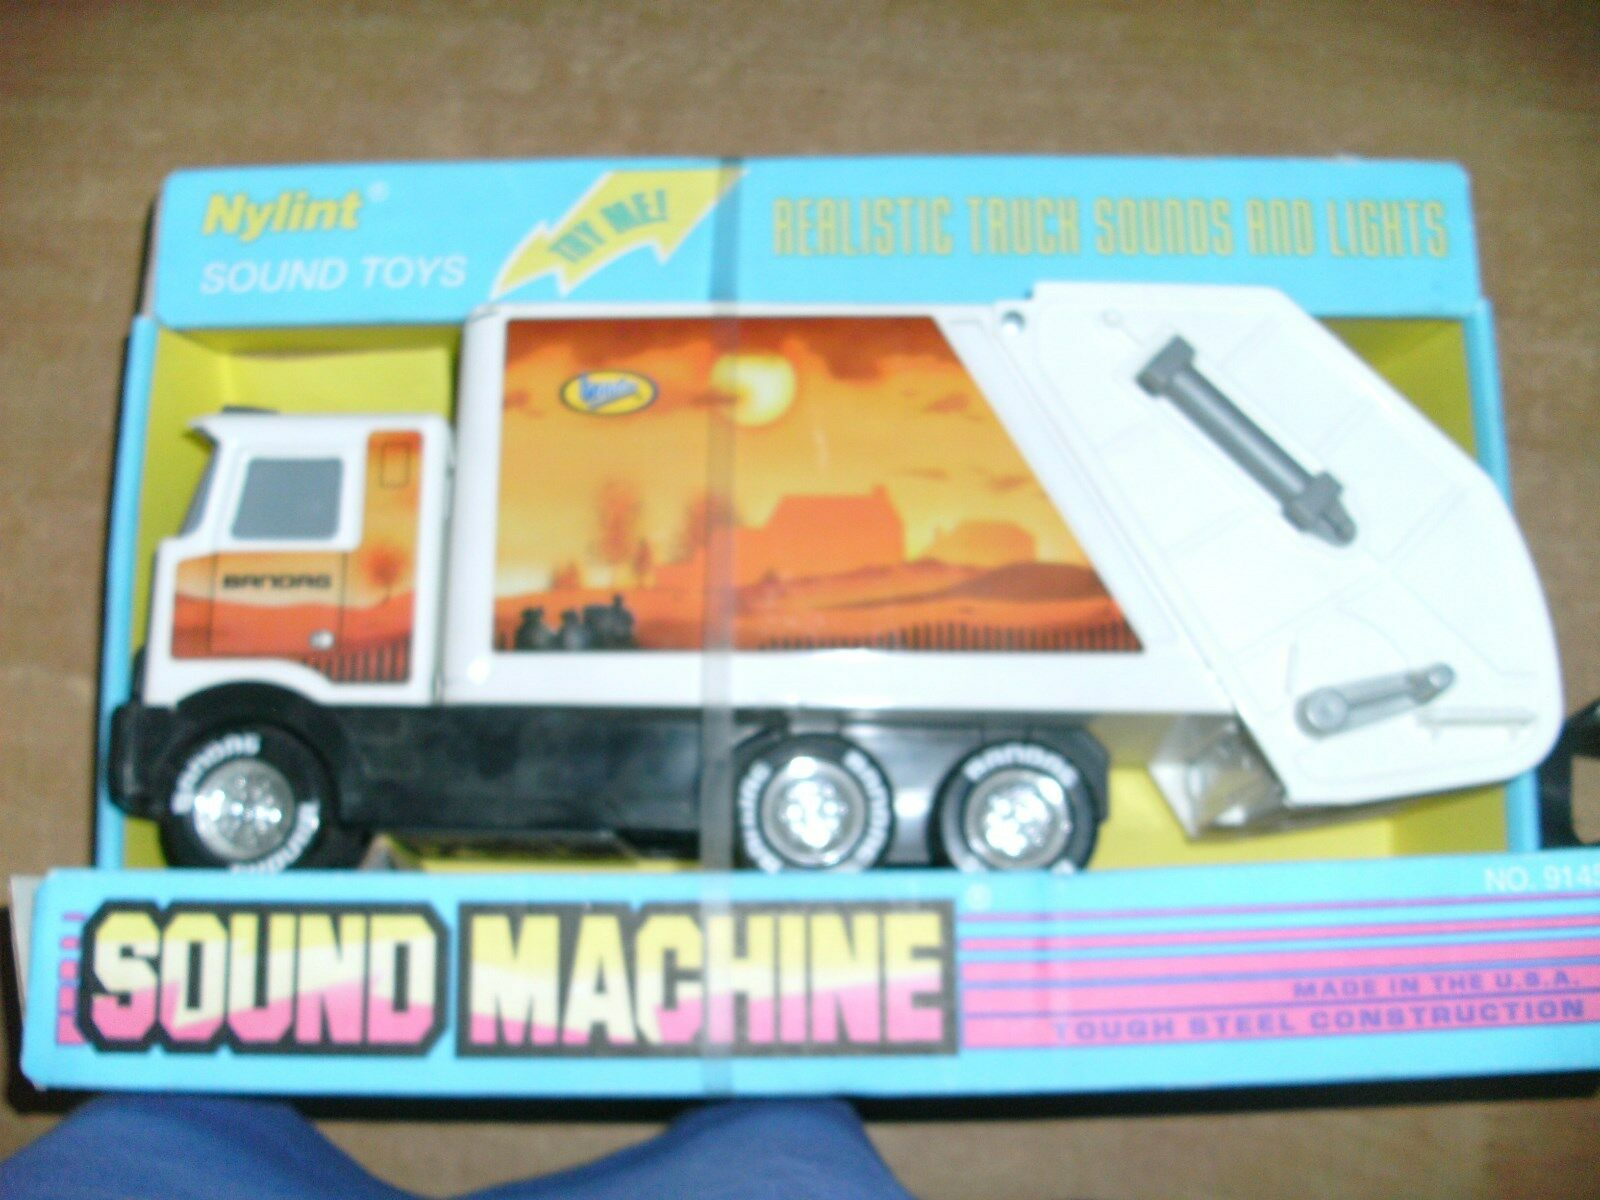 LKW Transporter Abfall Müllauto Nylint Sound & Lights Toys electric tools